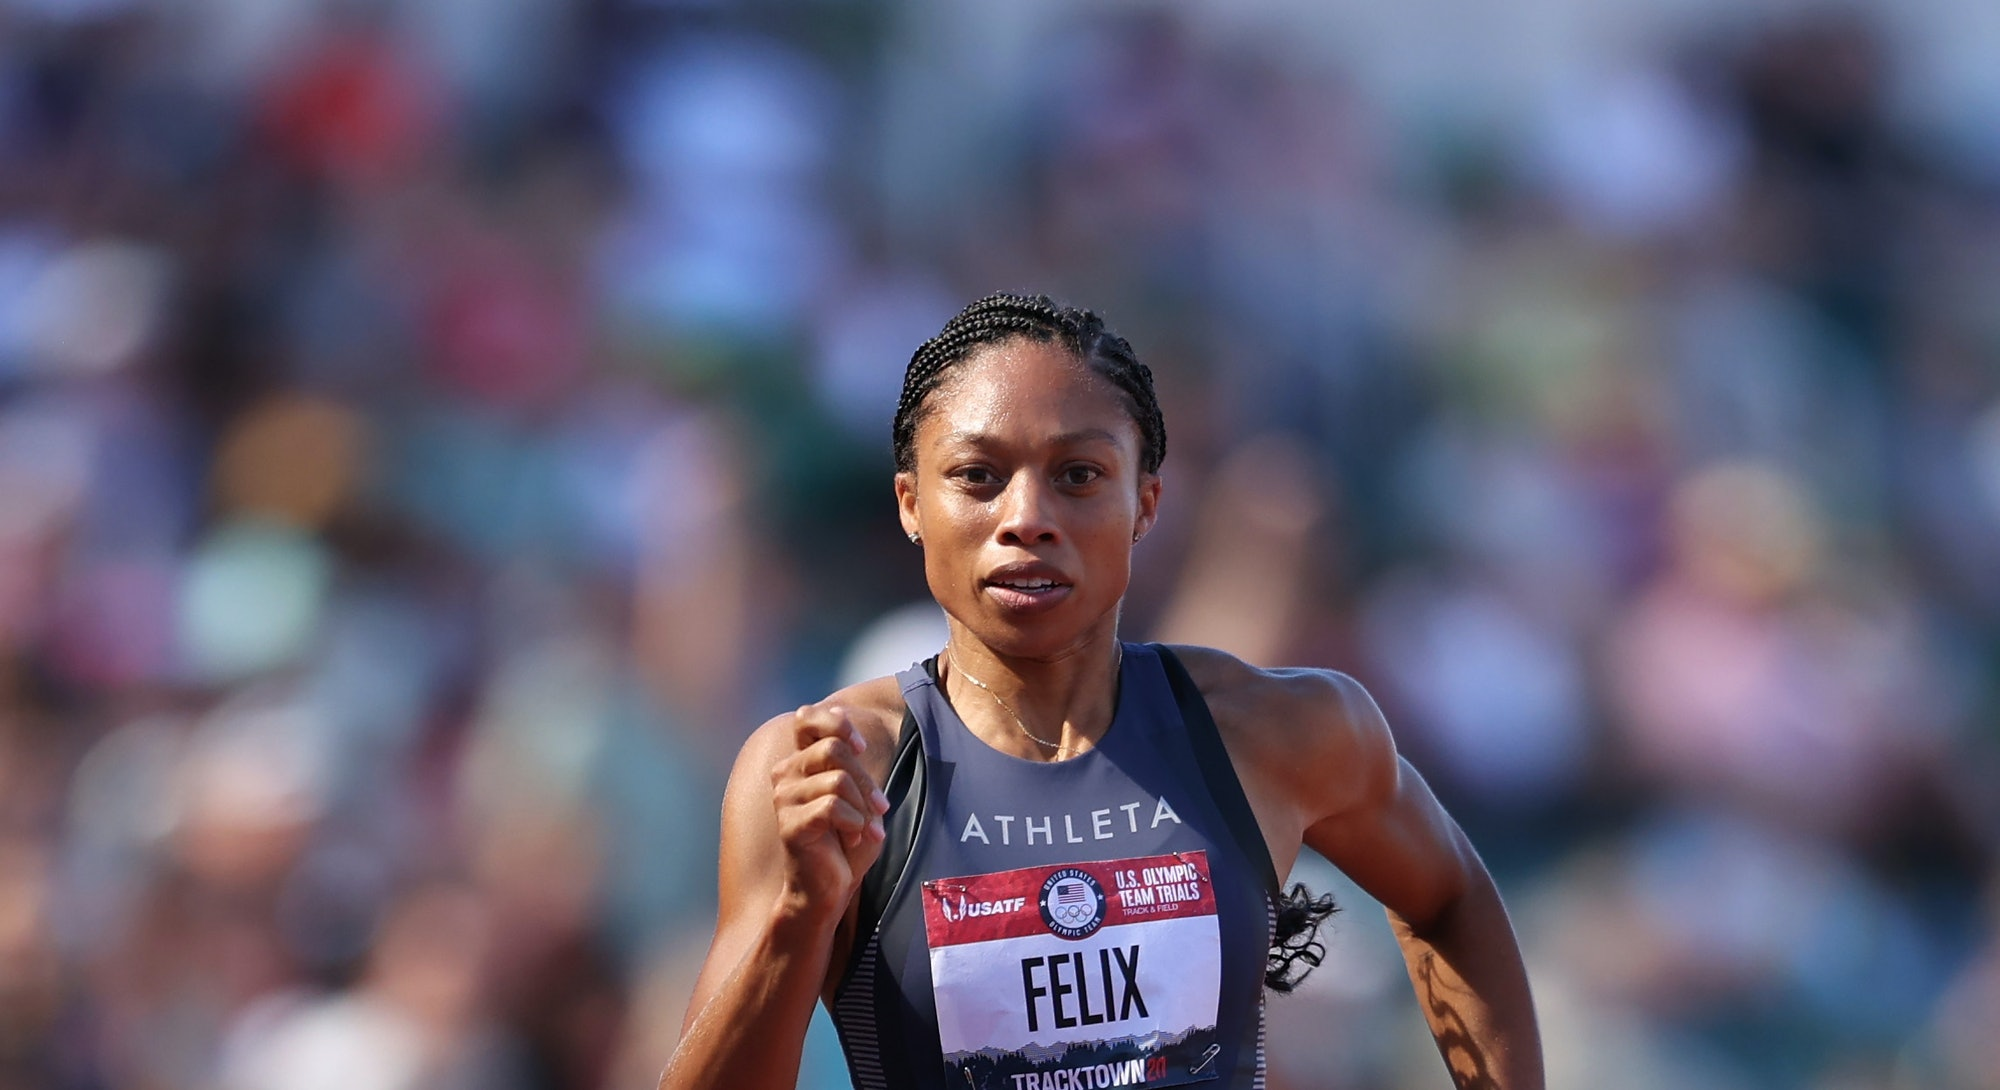 EUGENE, OREGON - JUNE 25: Allyson Felix competes in the Women' 200 Meters Semi-Finals during day eig...